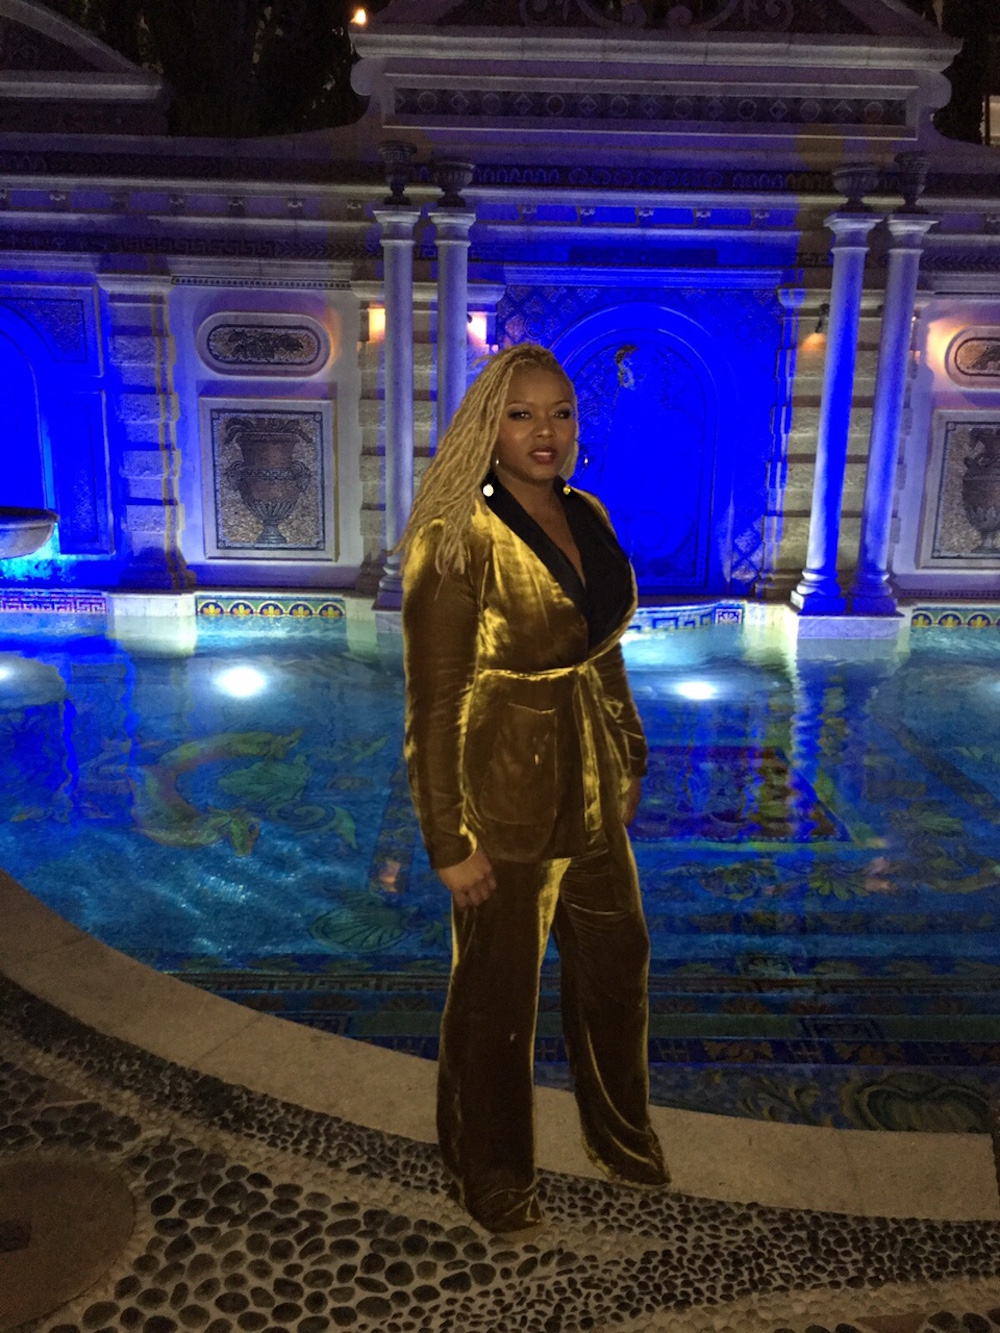 The Bomb Restaurant Miami Giannis at The Villa Casa Casuarina former Versace Mansion in